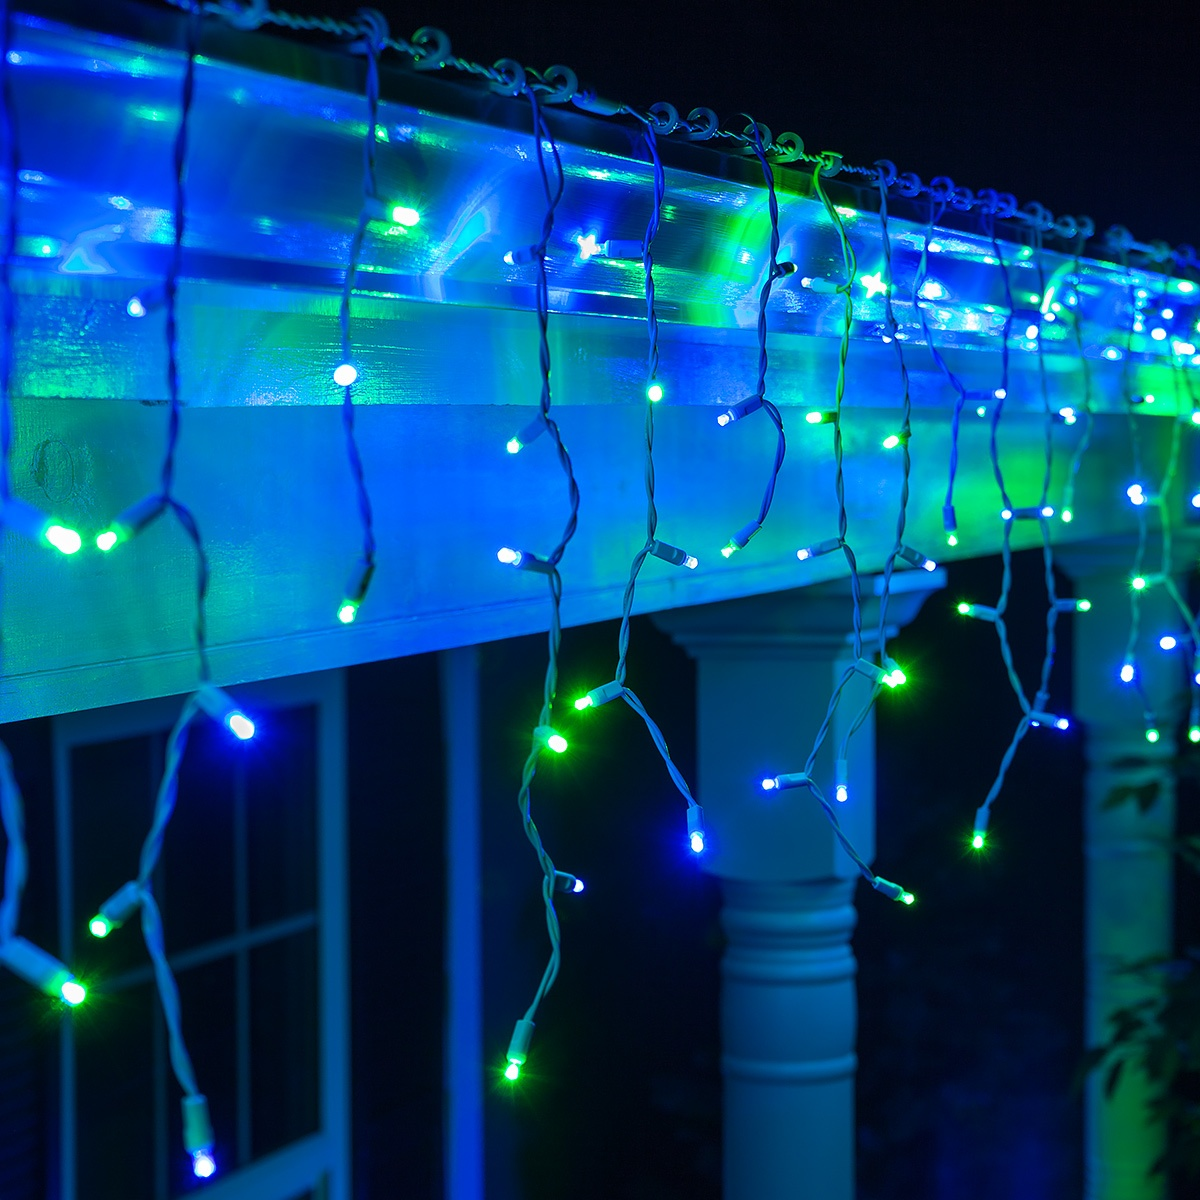 Icicle Lights Wiring Diagram Christmas Detailed Diagrams For A String Of Led 70 5mm Blue Green Bliss Light